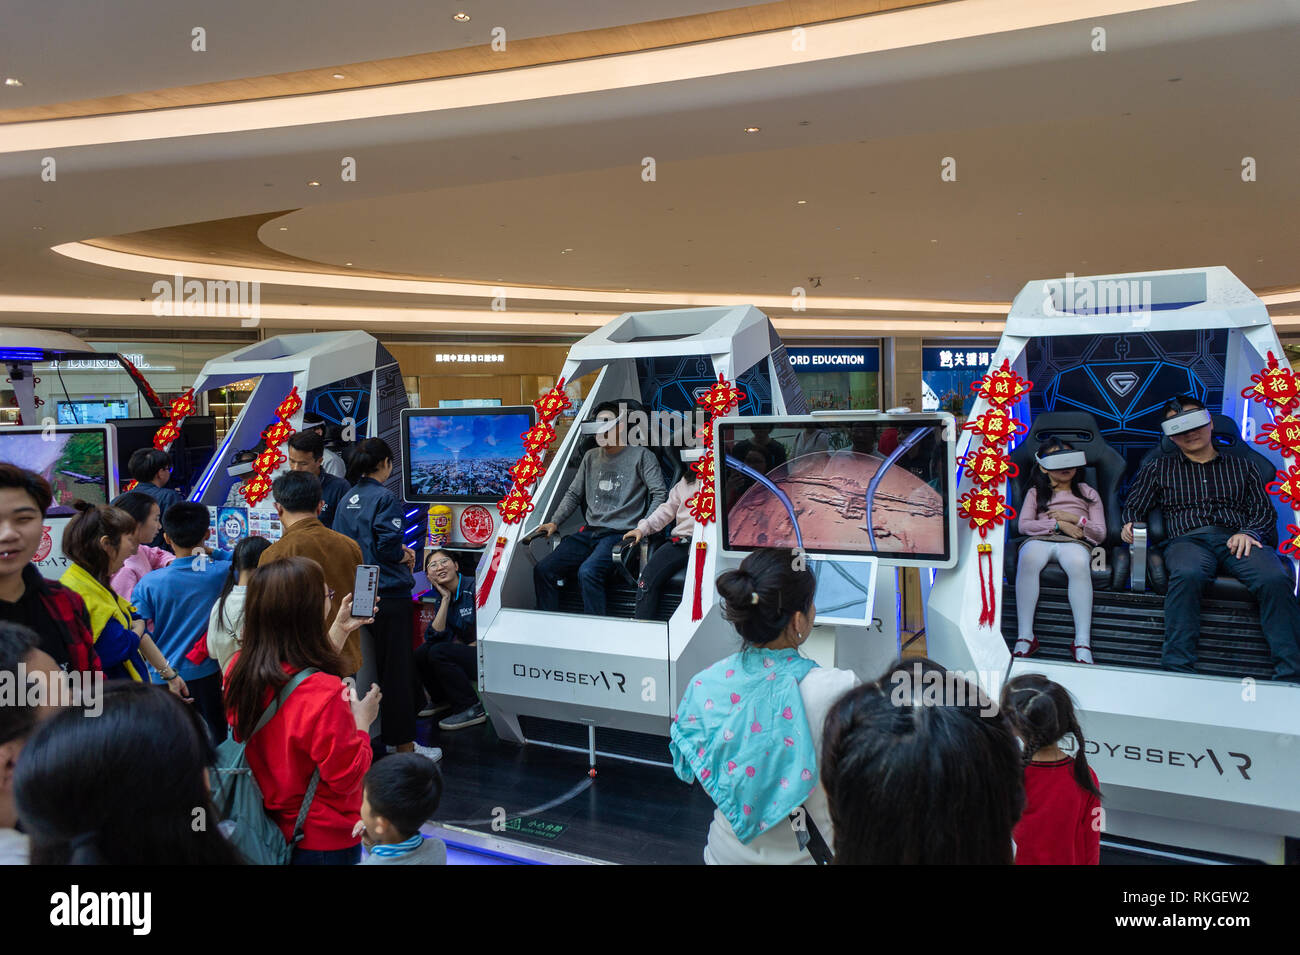 People enjoying VR games riding small space pods at a shopping mall